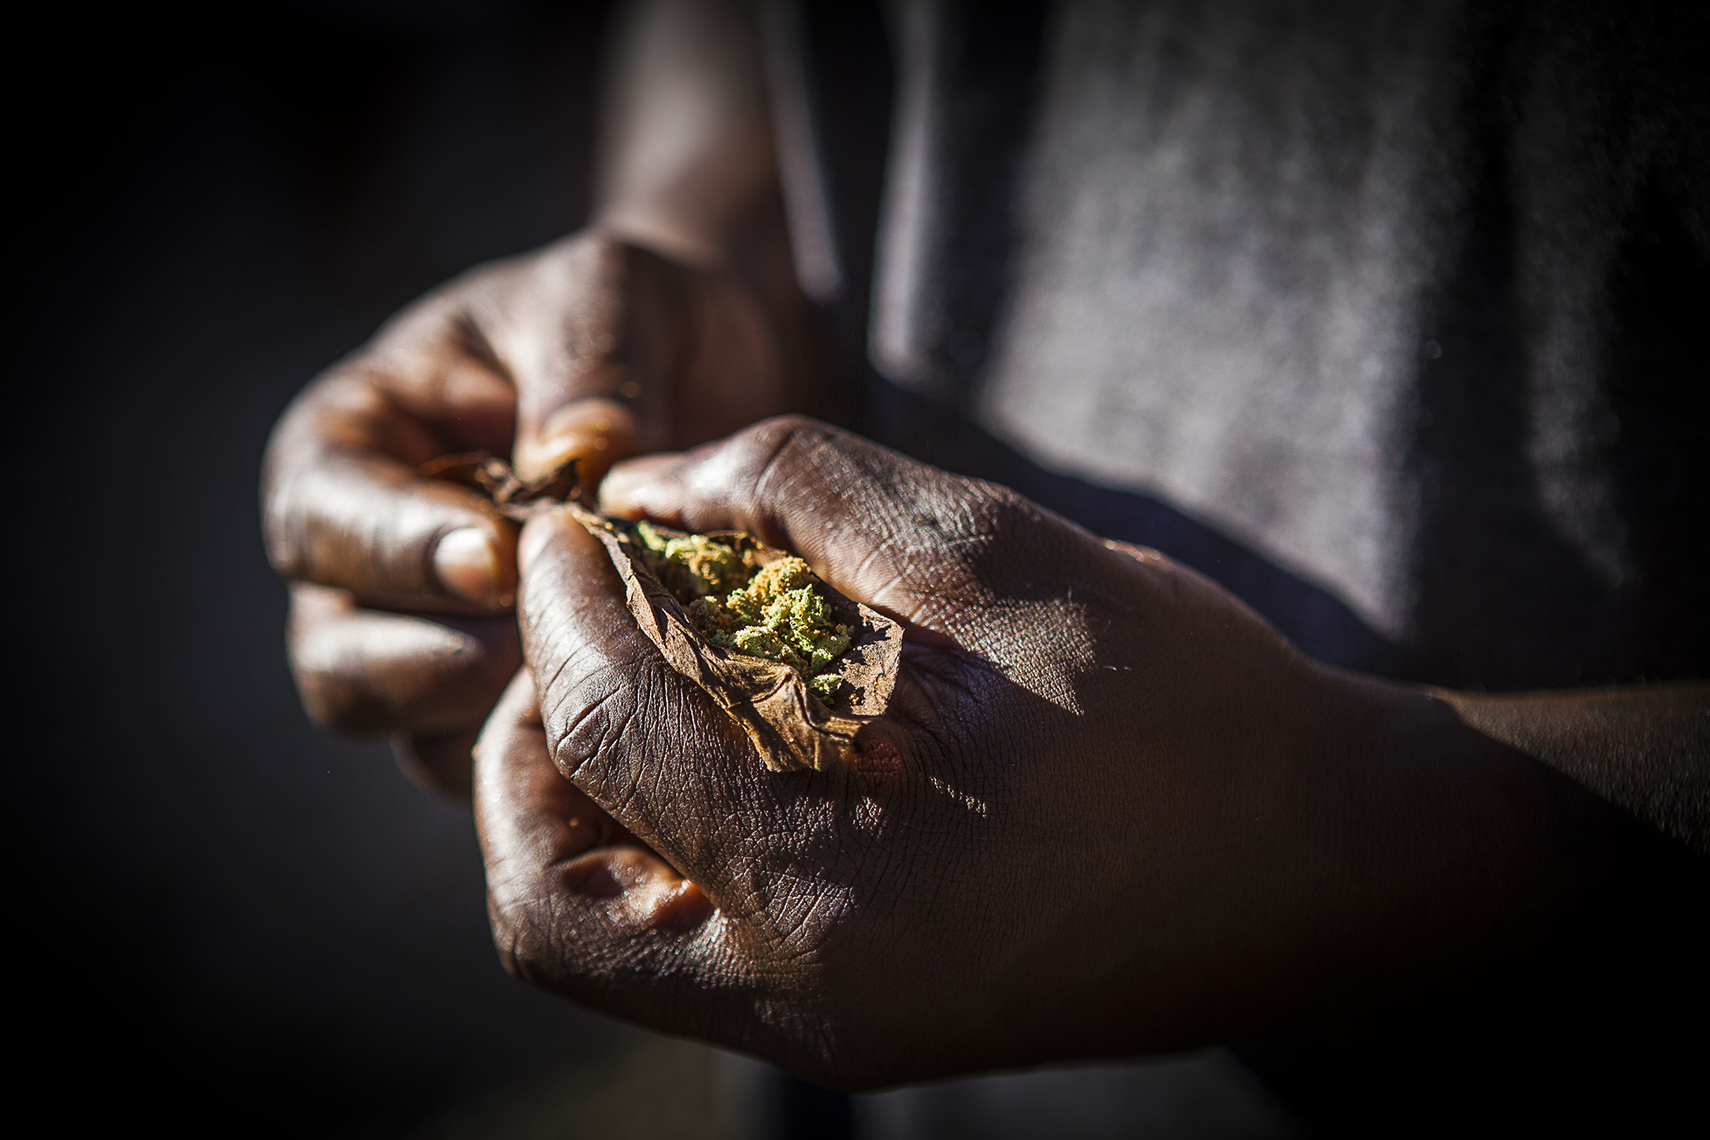 Legalized It.  Close up photograph of a man rolling a joint